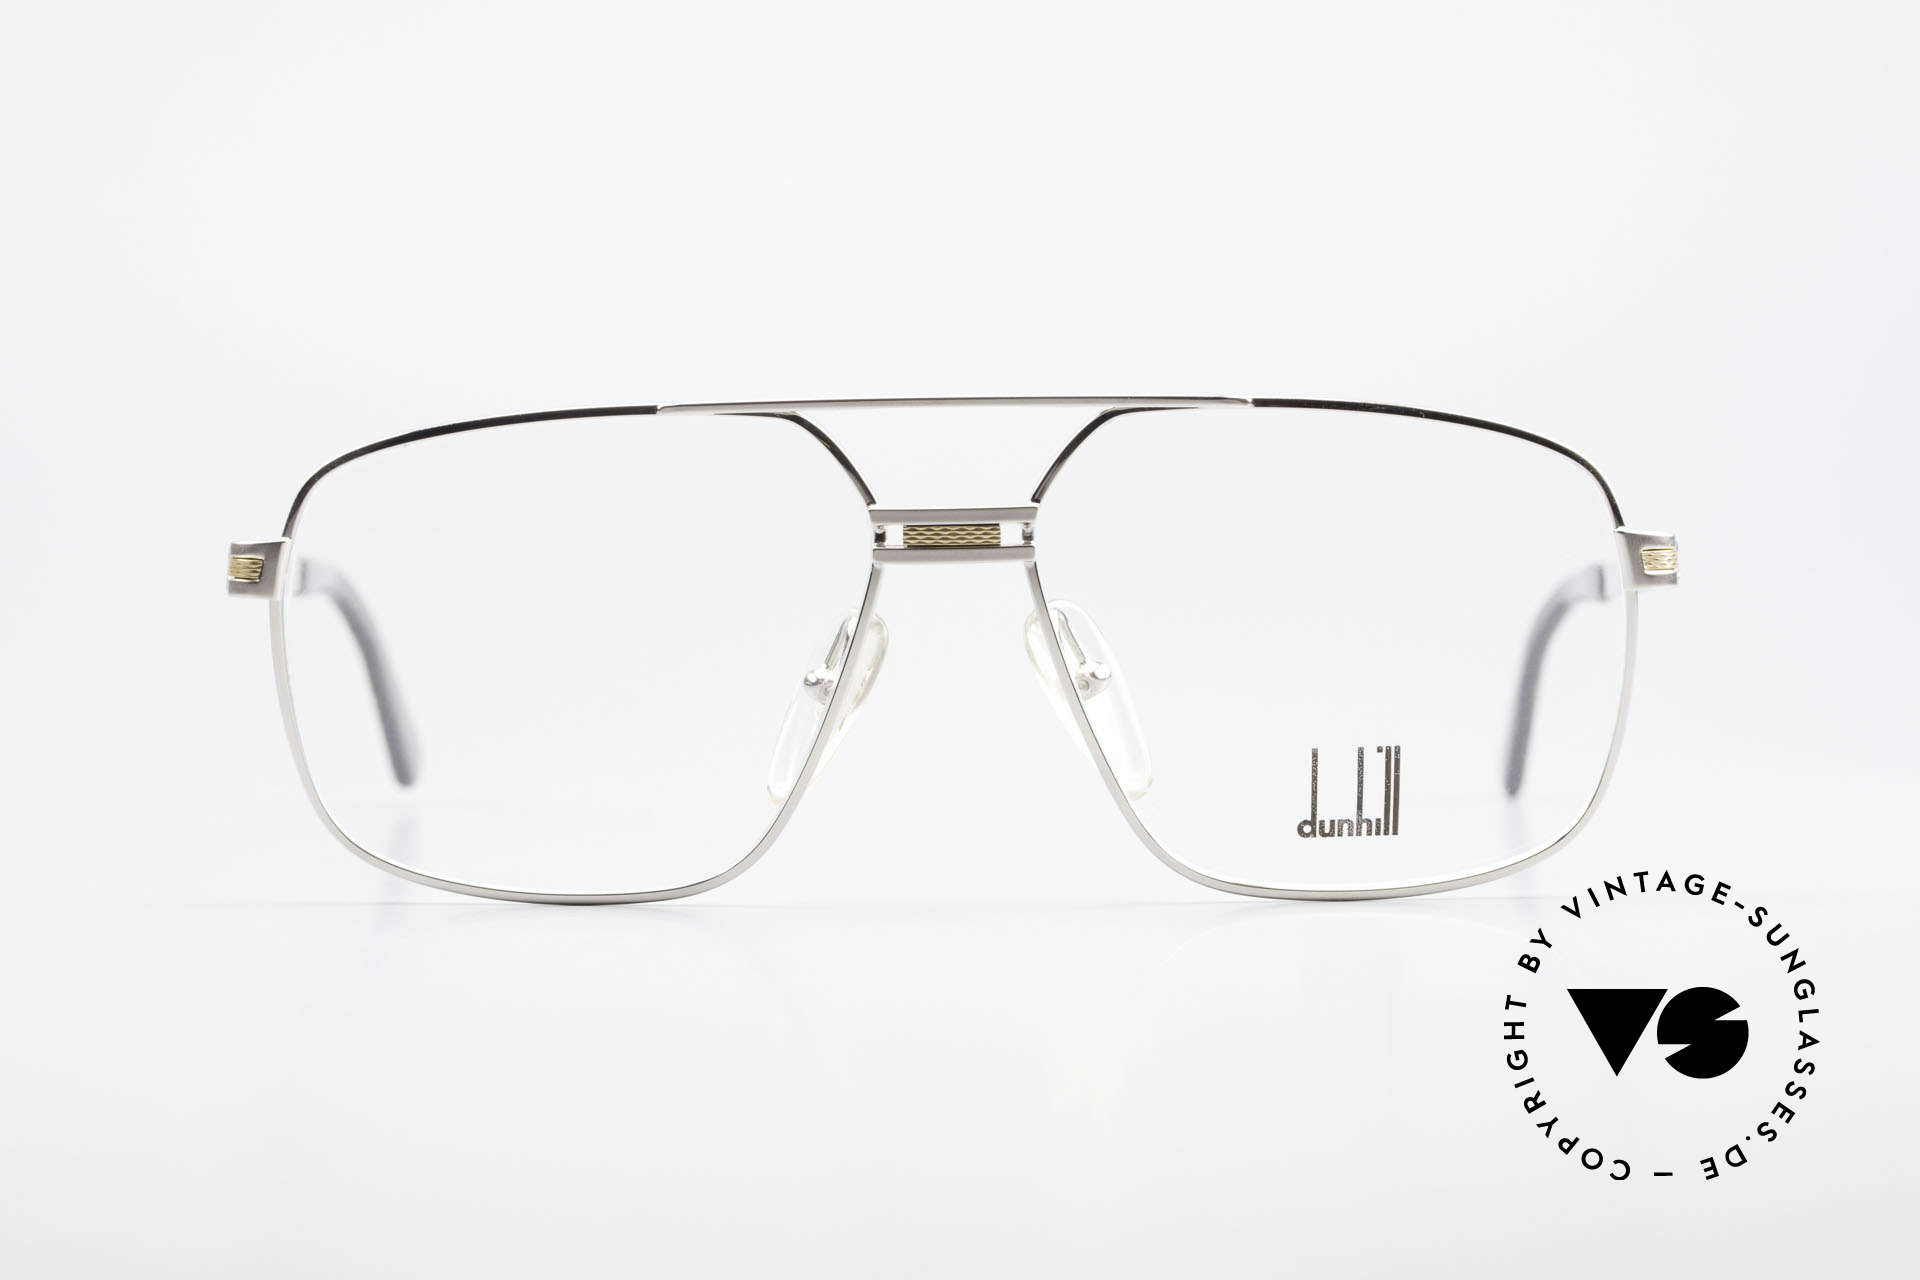 Dunhill 6134 Platinum Plated 90's Frame, 1990's luxury eyeglass-frame by Alfred DUNHILL, Made for Men